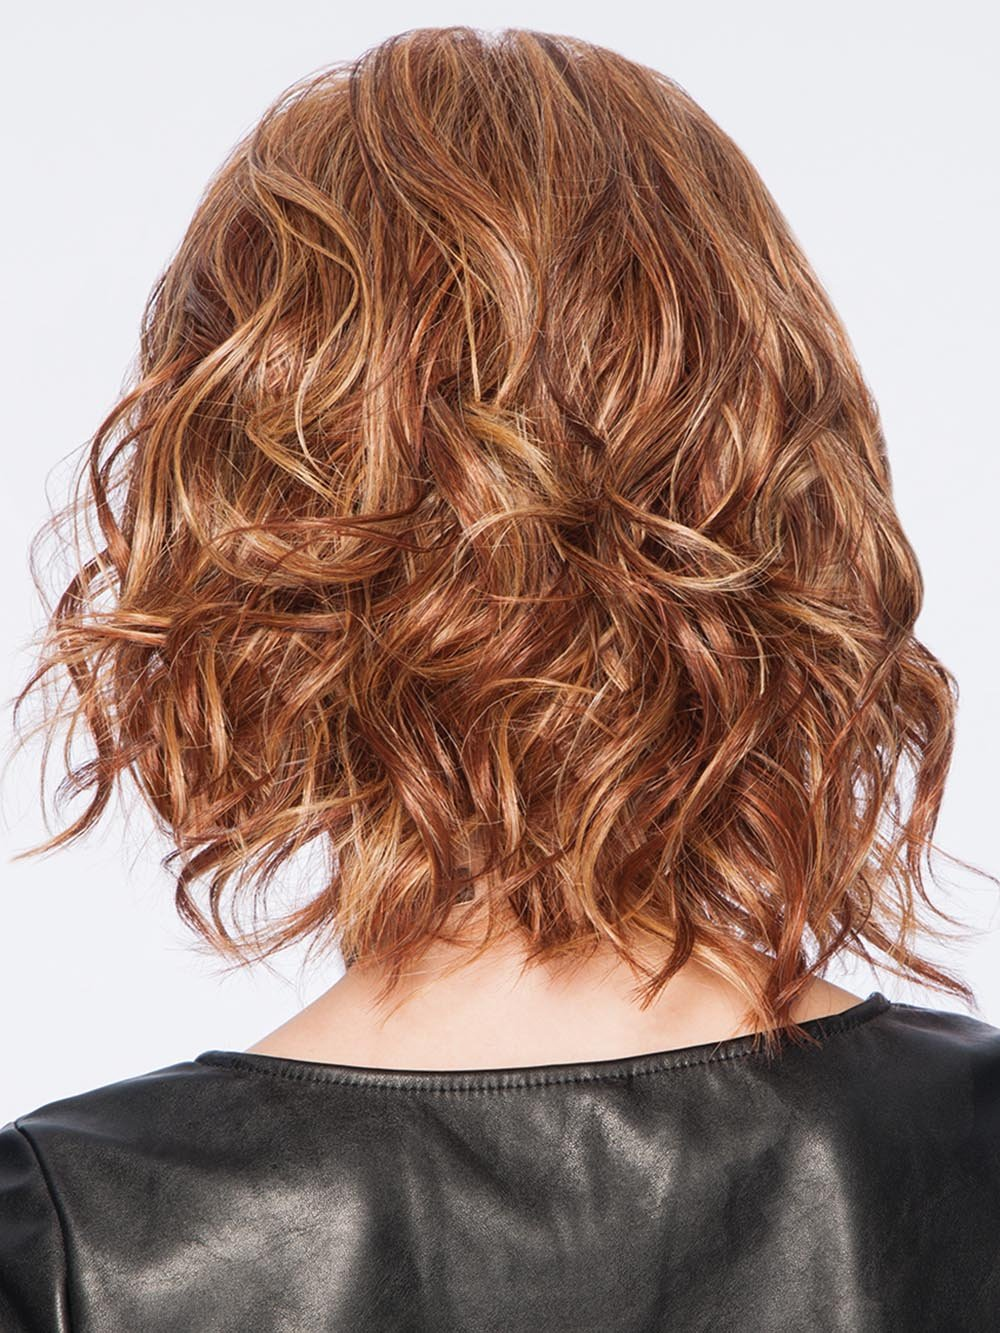 Tousled Bob Wig By Hairdo Hf Synthetic Wigs The Wig Experts